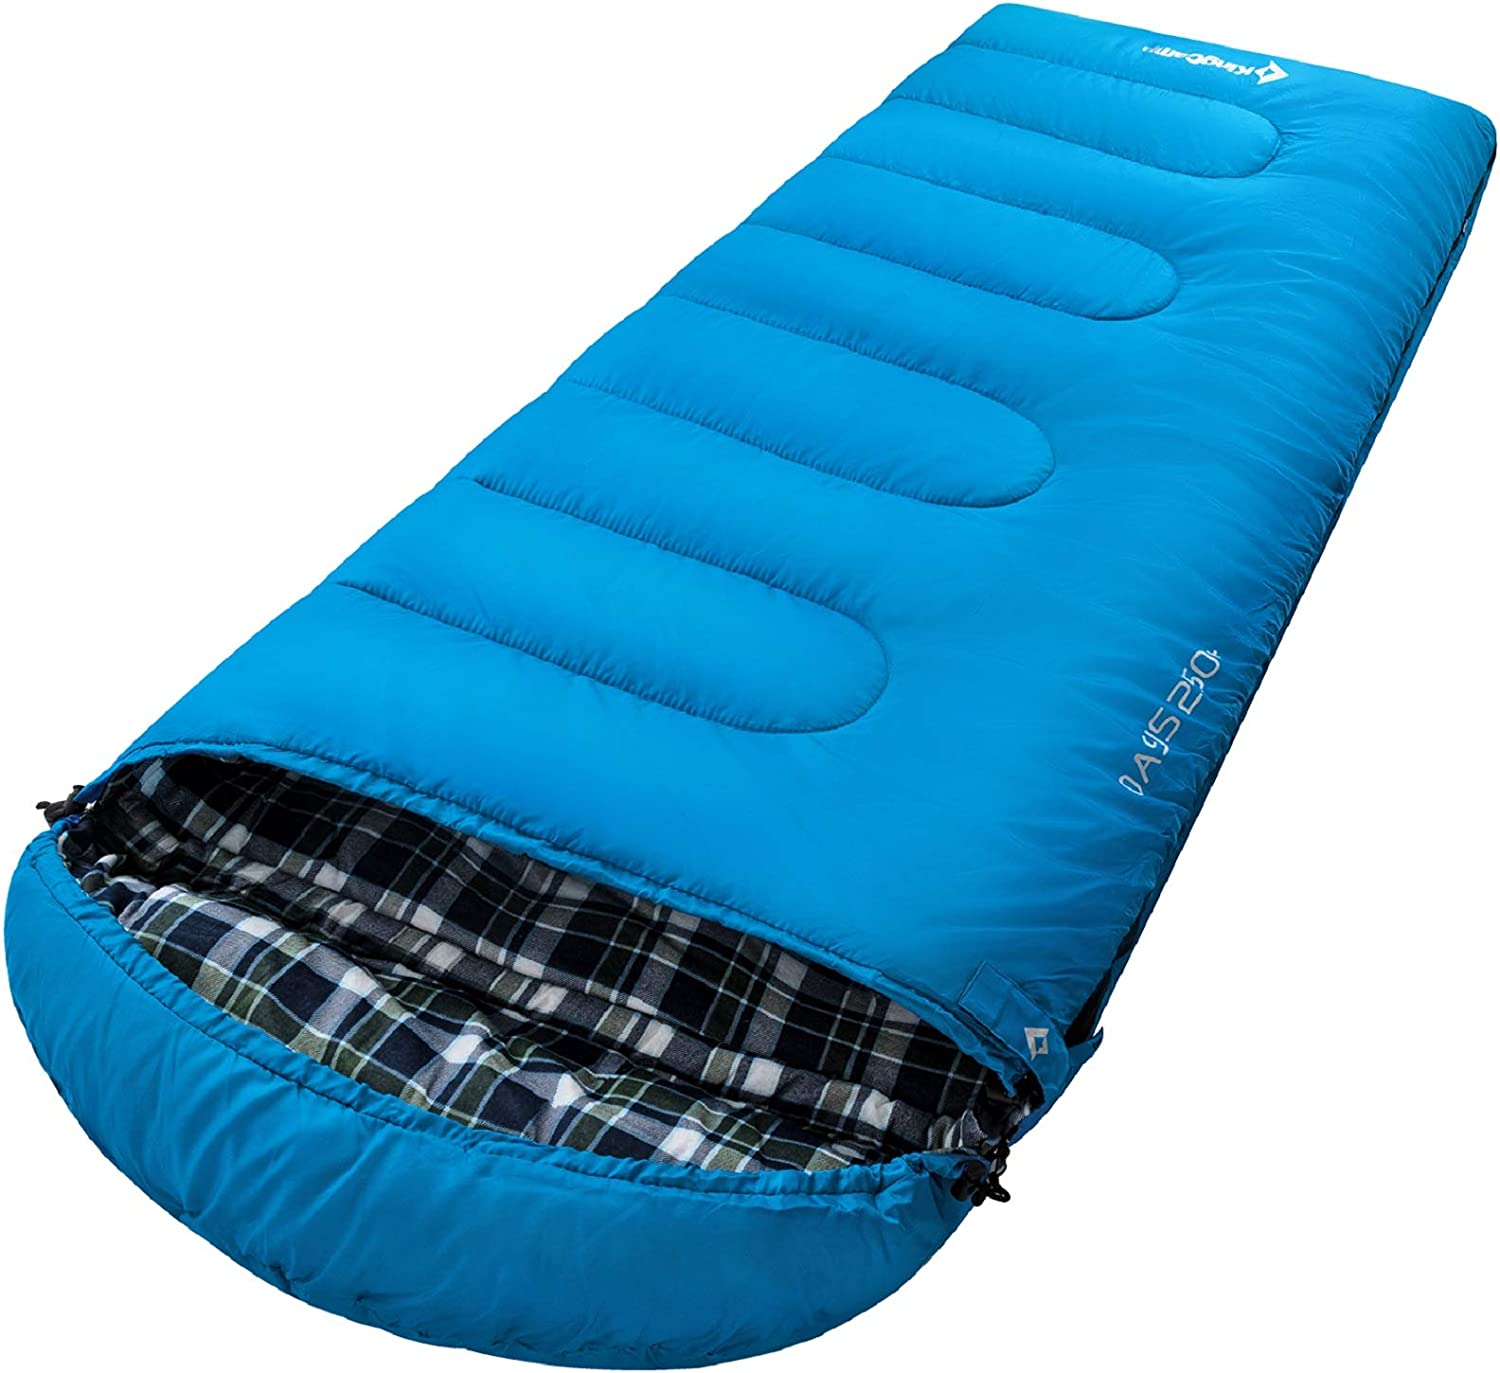 KingCamp Oasis Sleeping Bag 3-4 Season for Adult Extra-Large Envelope Style Easy to Carry Lightweight /& Waterproof /& Warm for Camping /& Outdoors